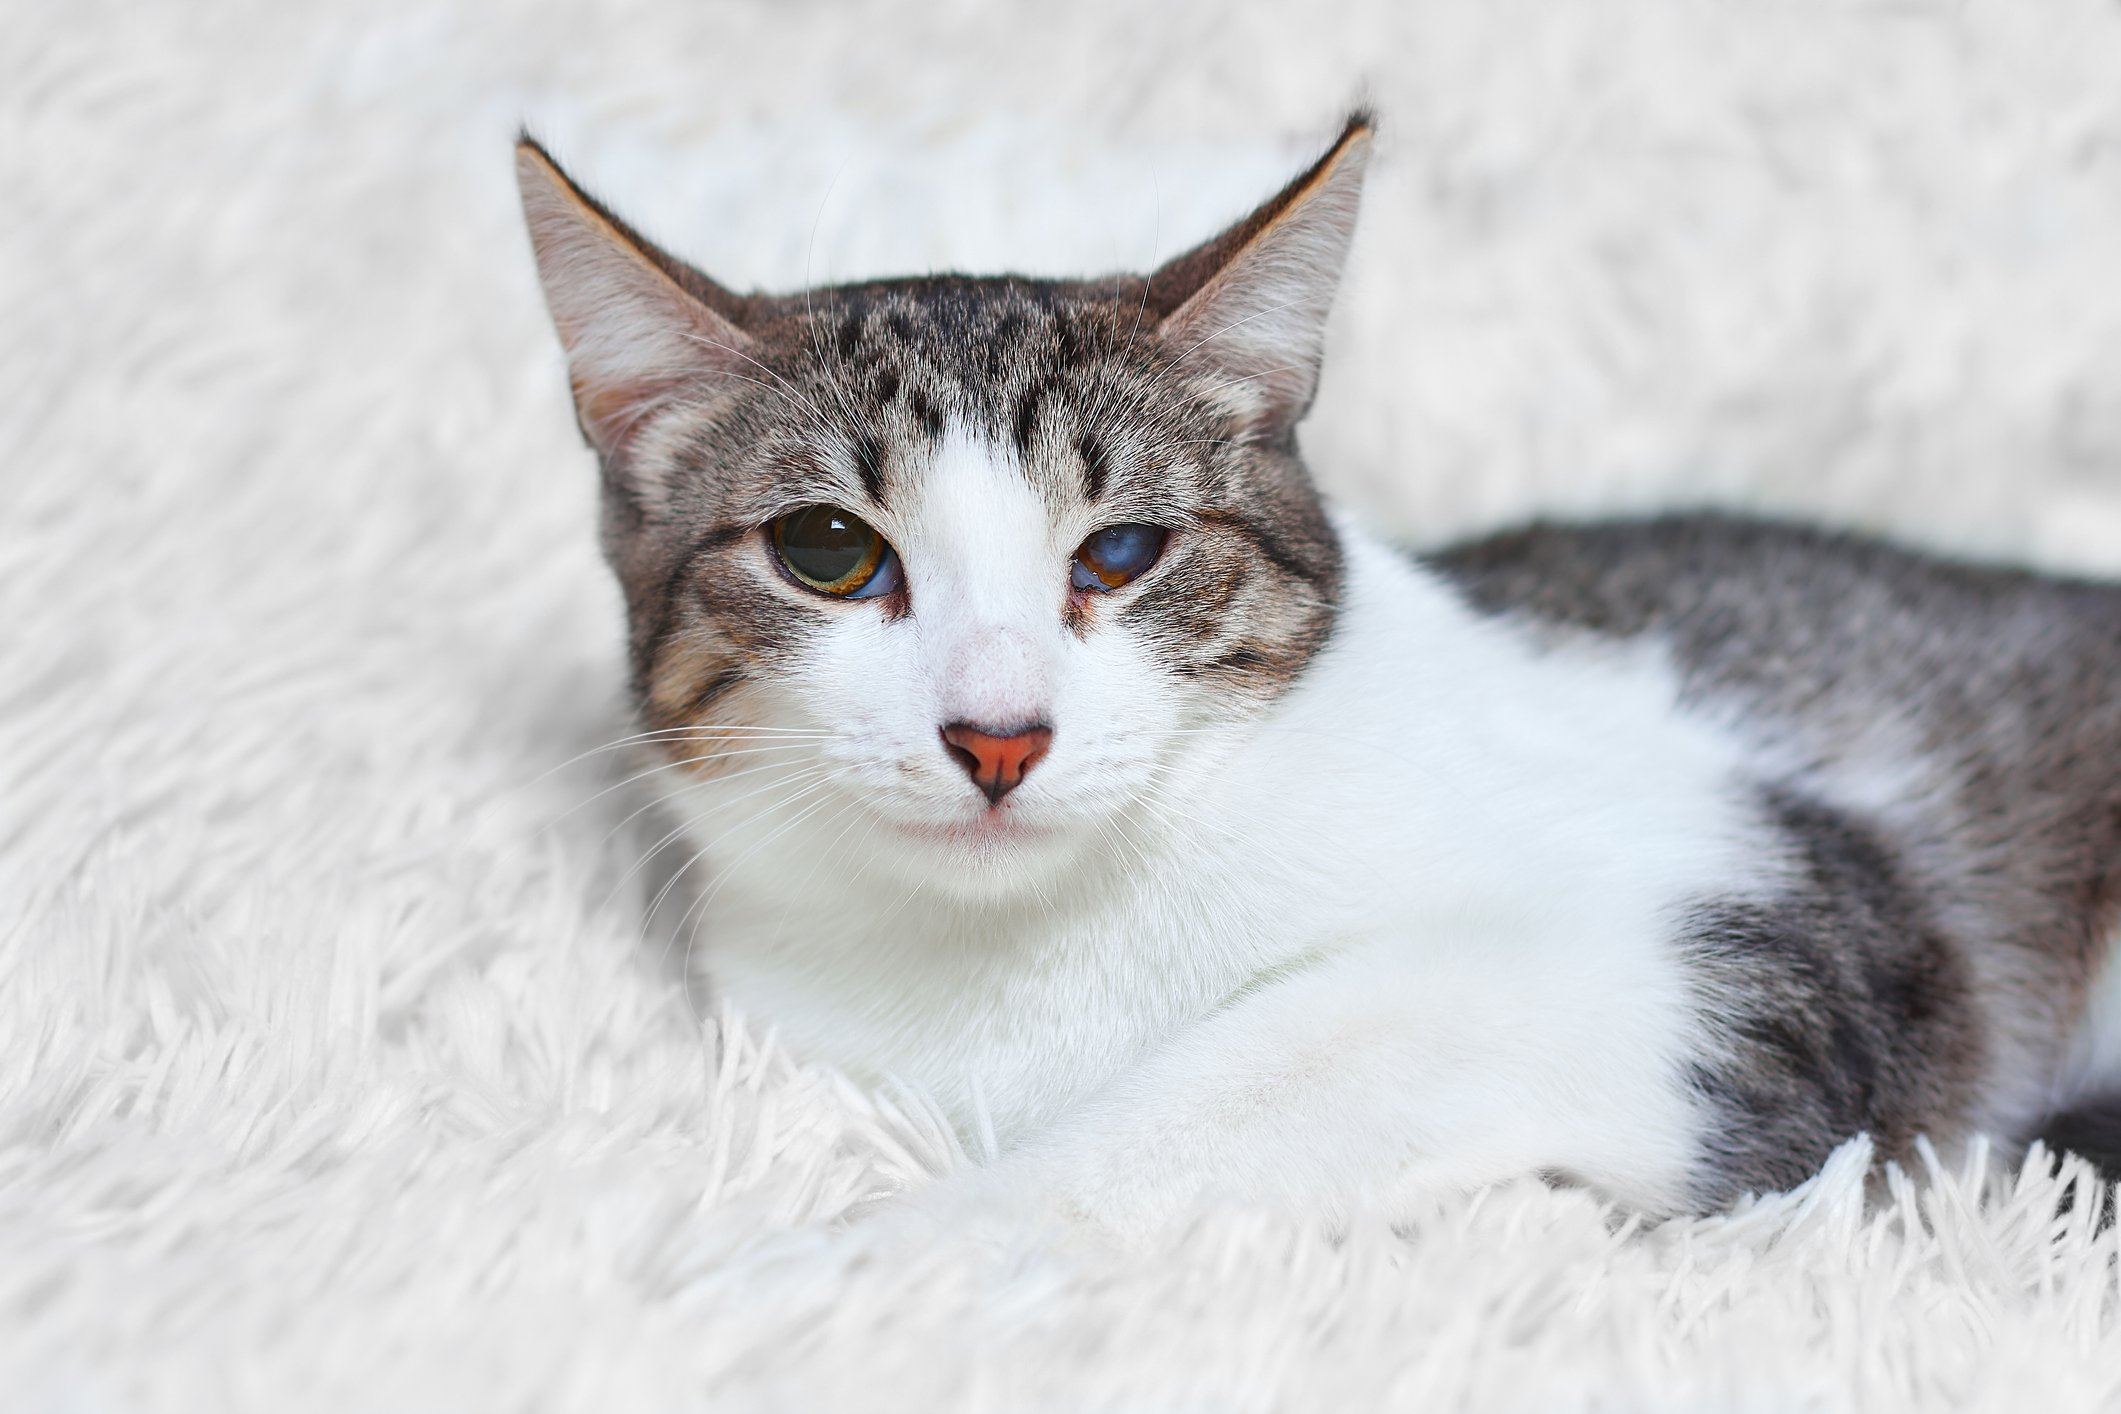 A grey and white cat with one cloudy eye sits on a comfortable white shag carpet